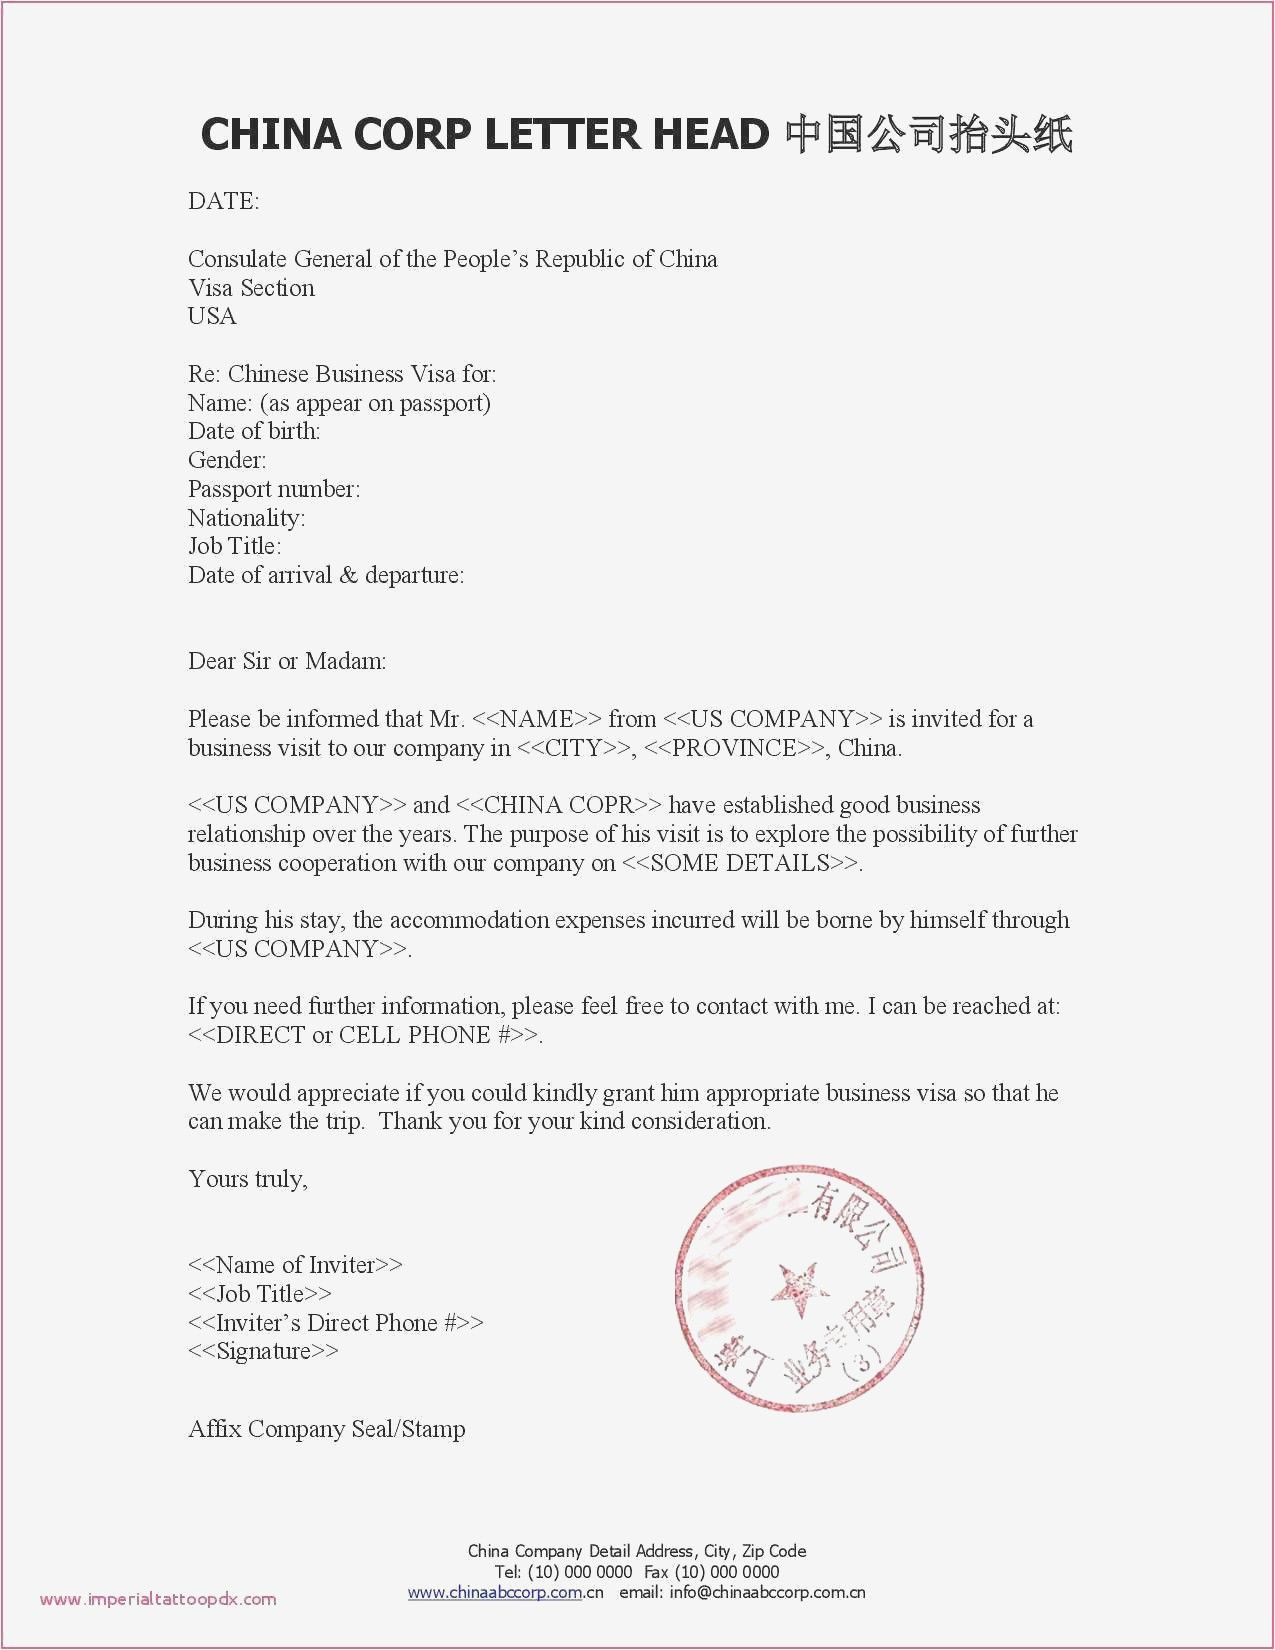 Download Valid Template For Formal Business Letter Can Save At